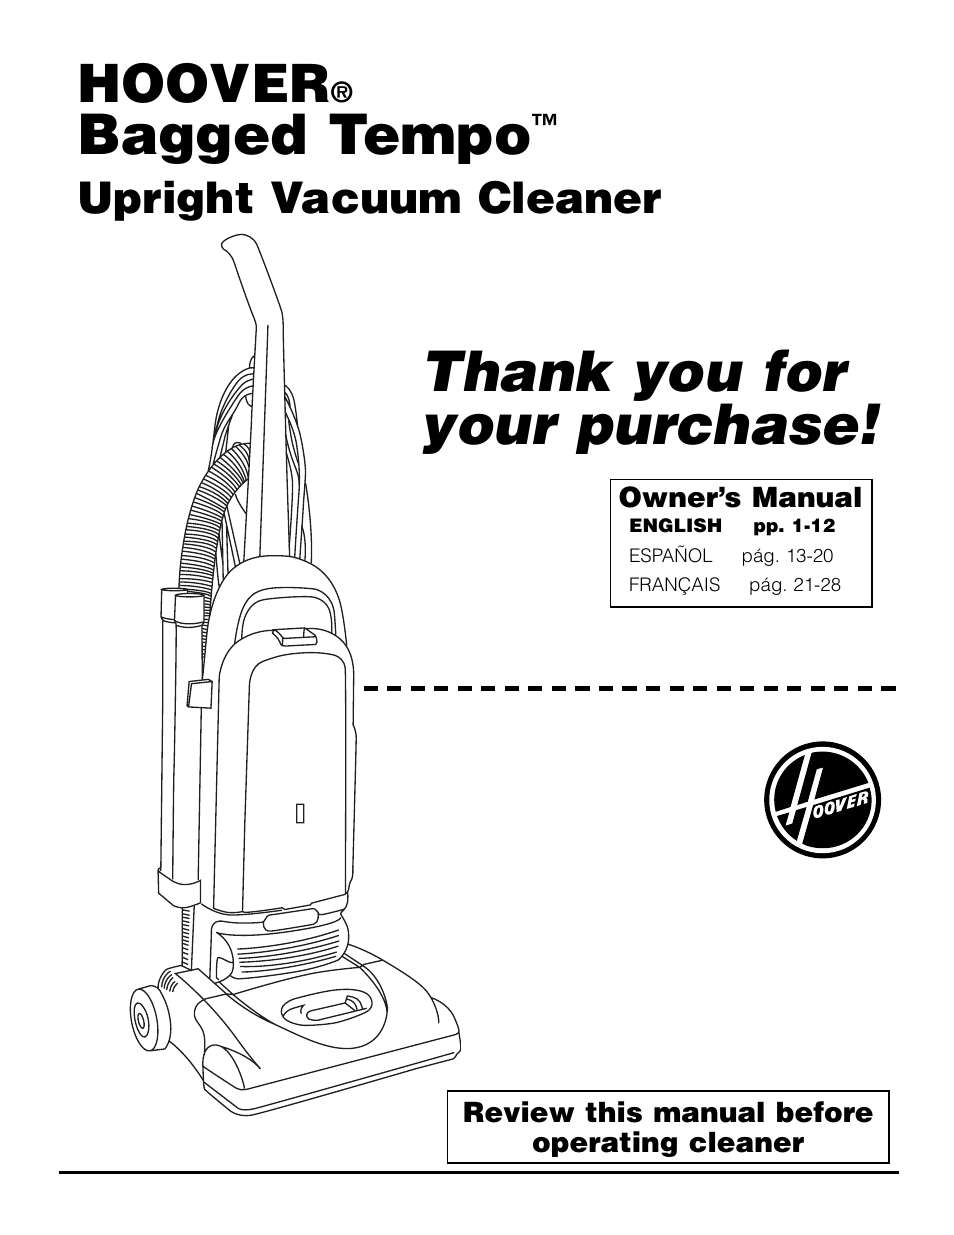 Hoover Bagged Tempo Upright Vacuum Cleaner User Manual